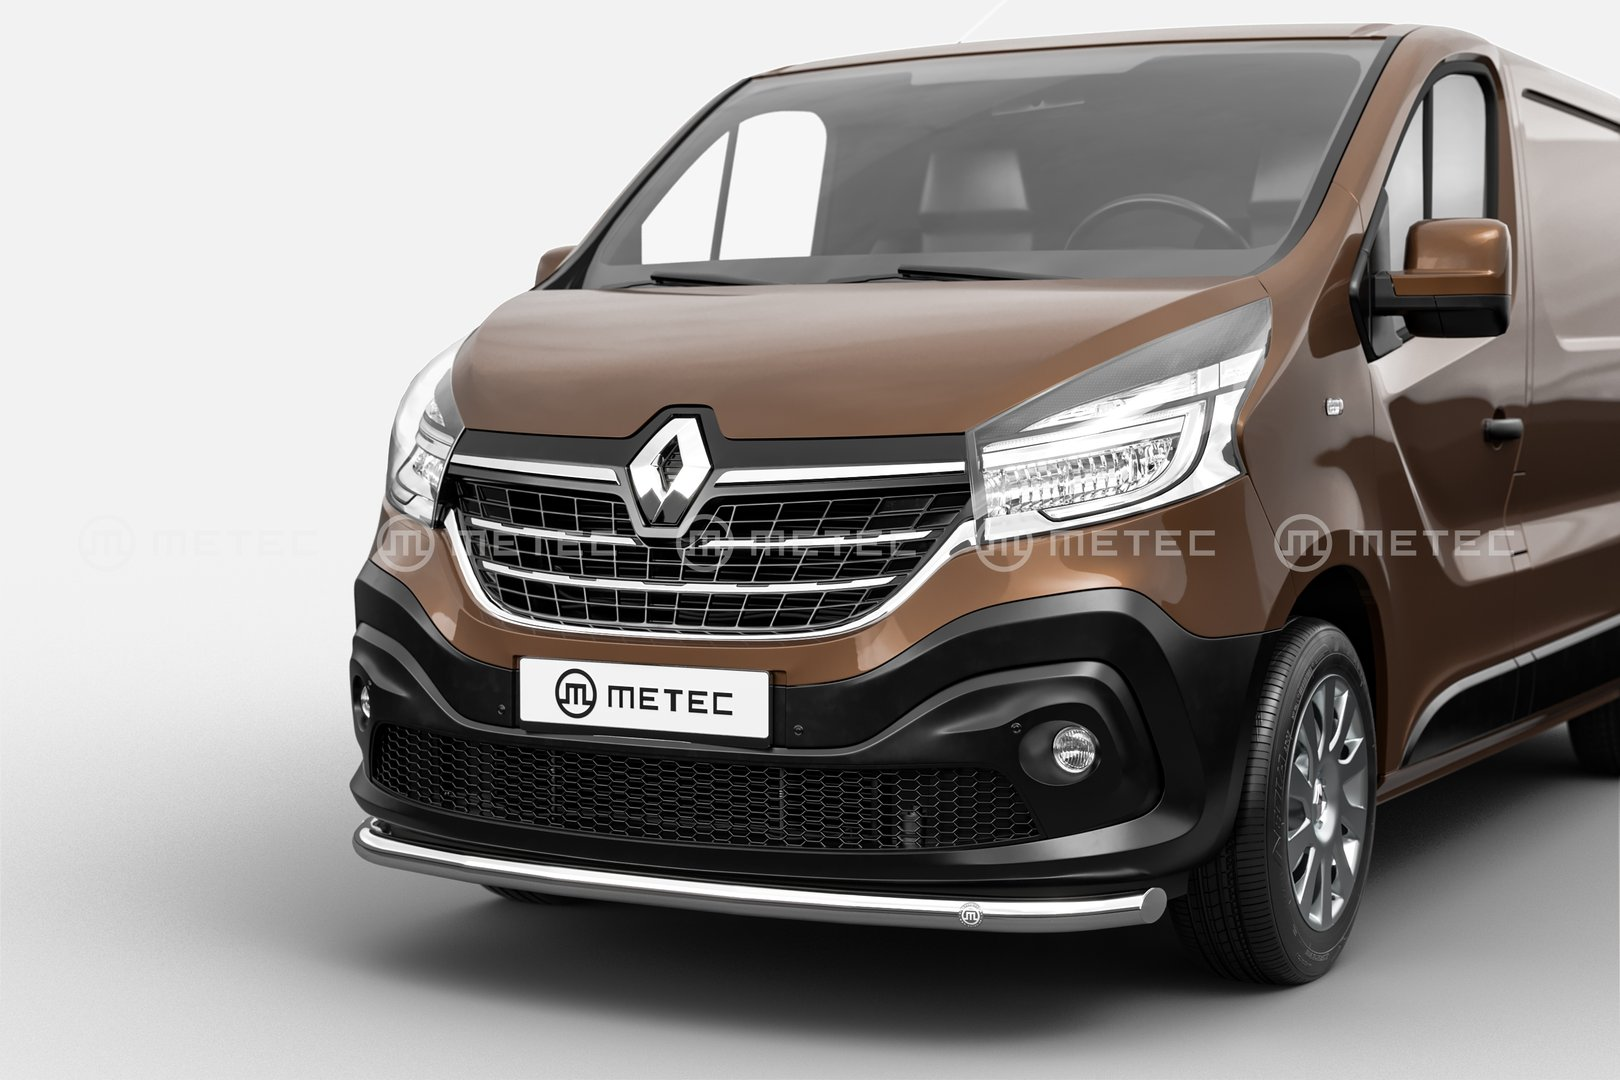 Renault Trafic Front Bumber Protection Bar 2014 Tuning Parts